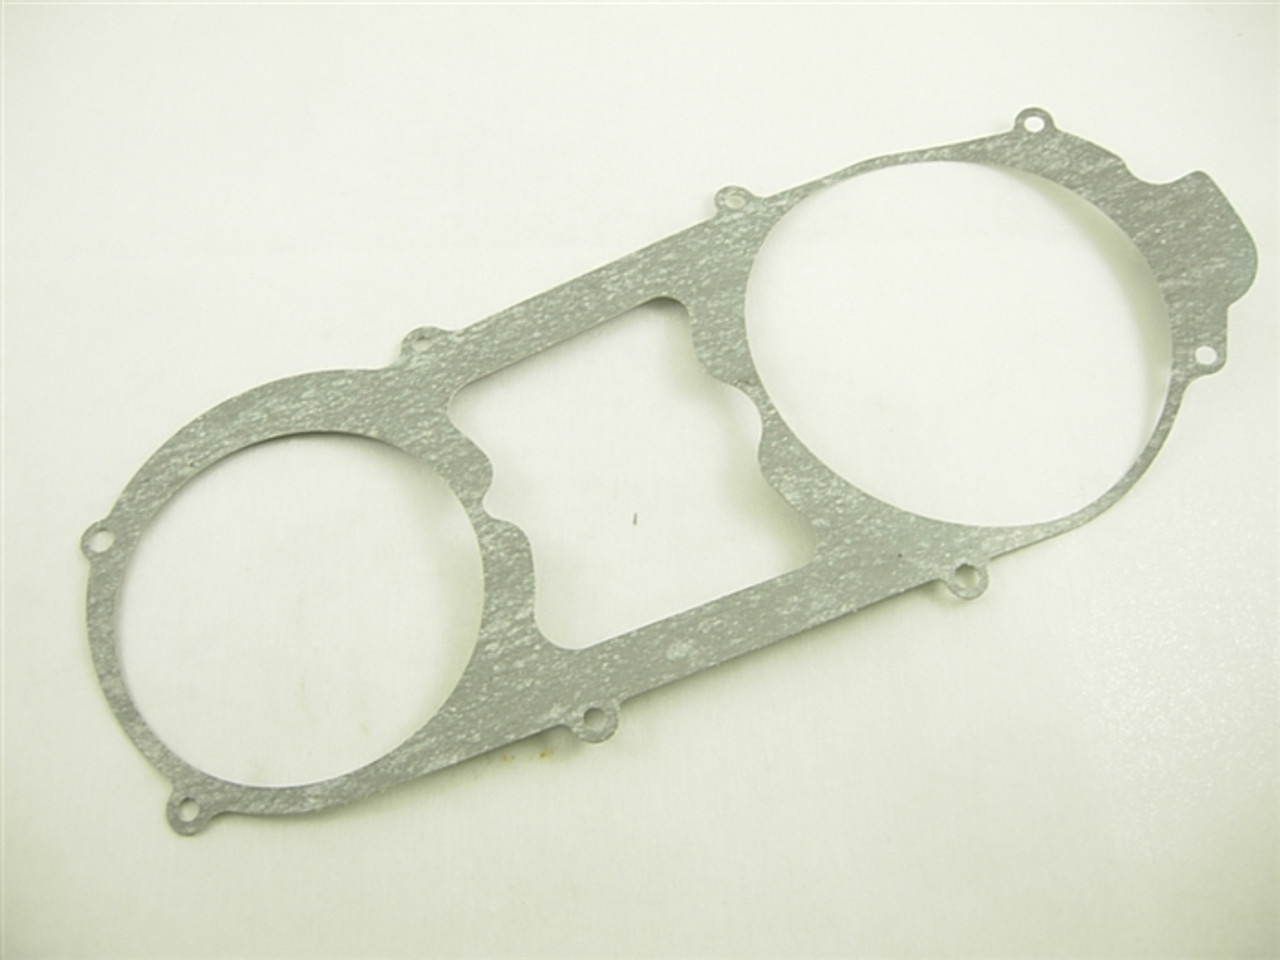 GASKET FOR CRANKCASE 12508-A140-6